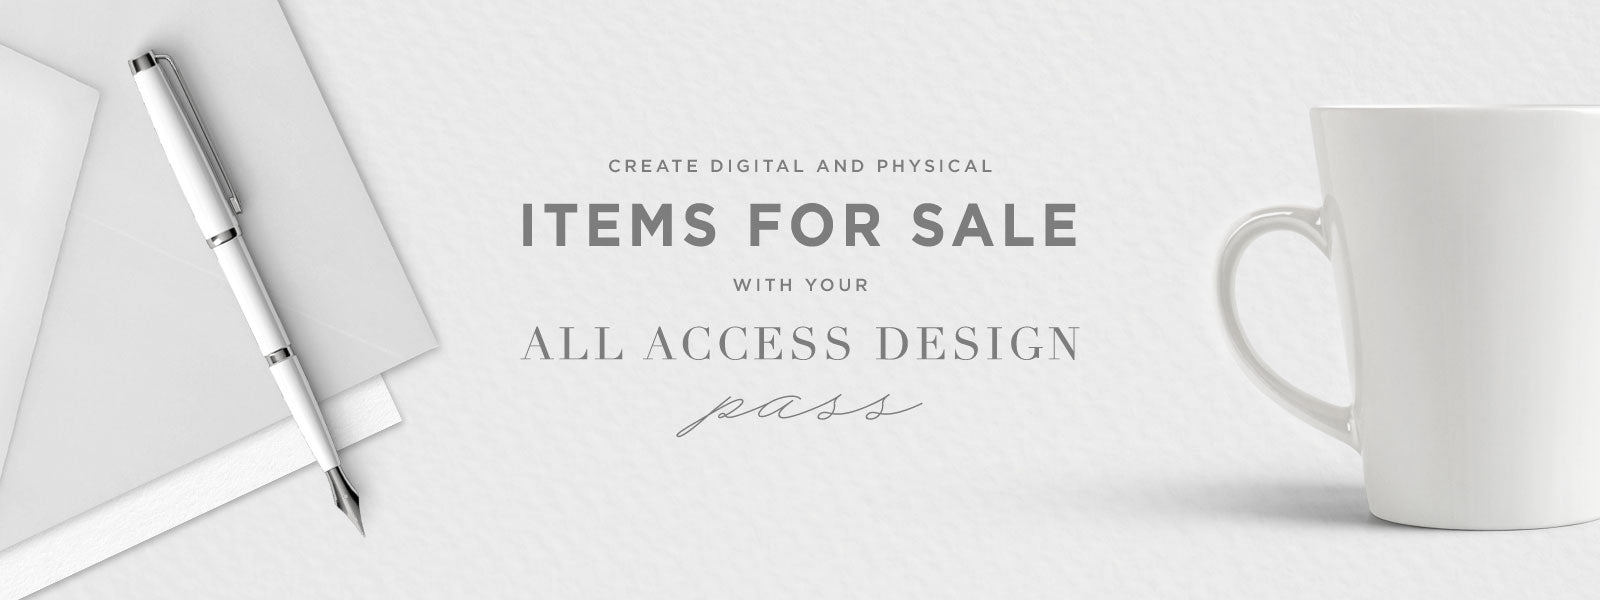 create items for sale using your all access design pass